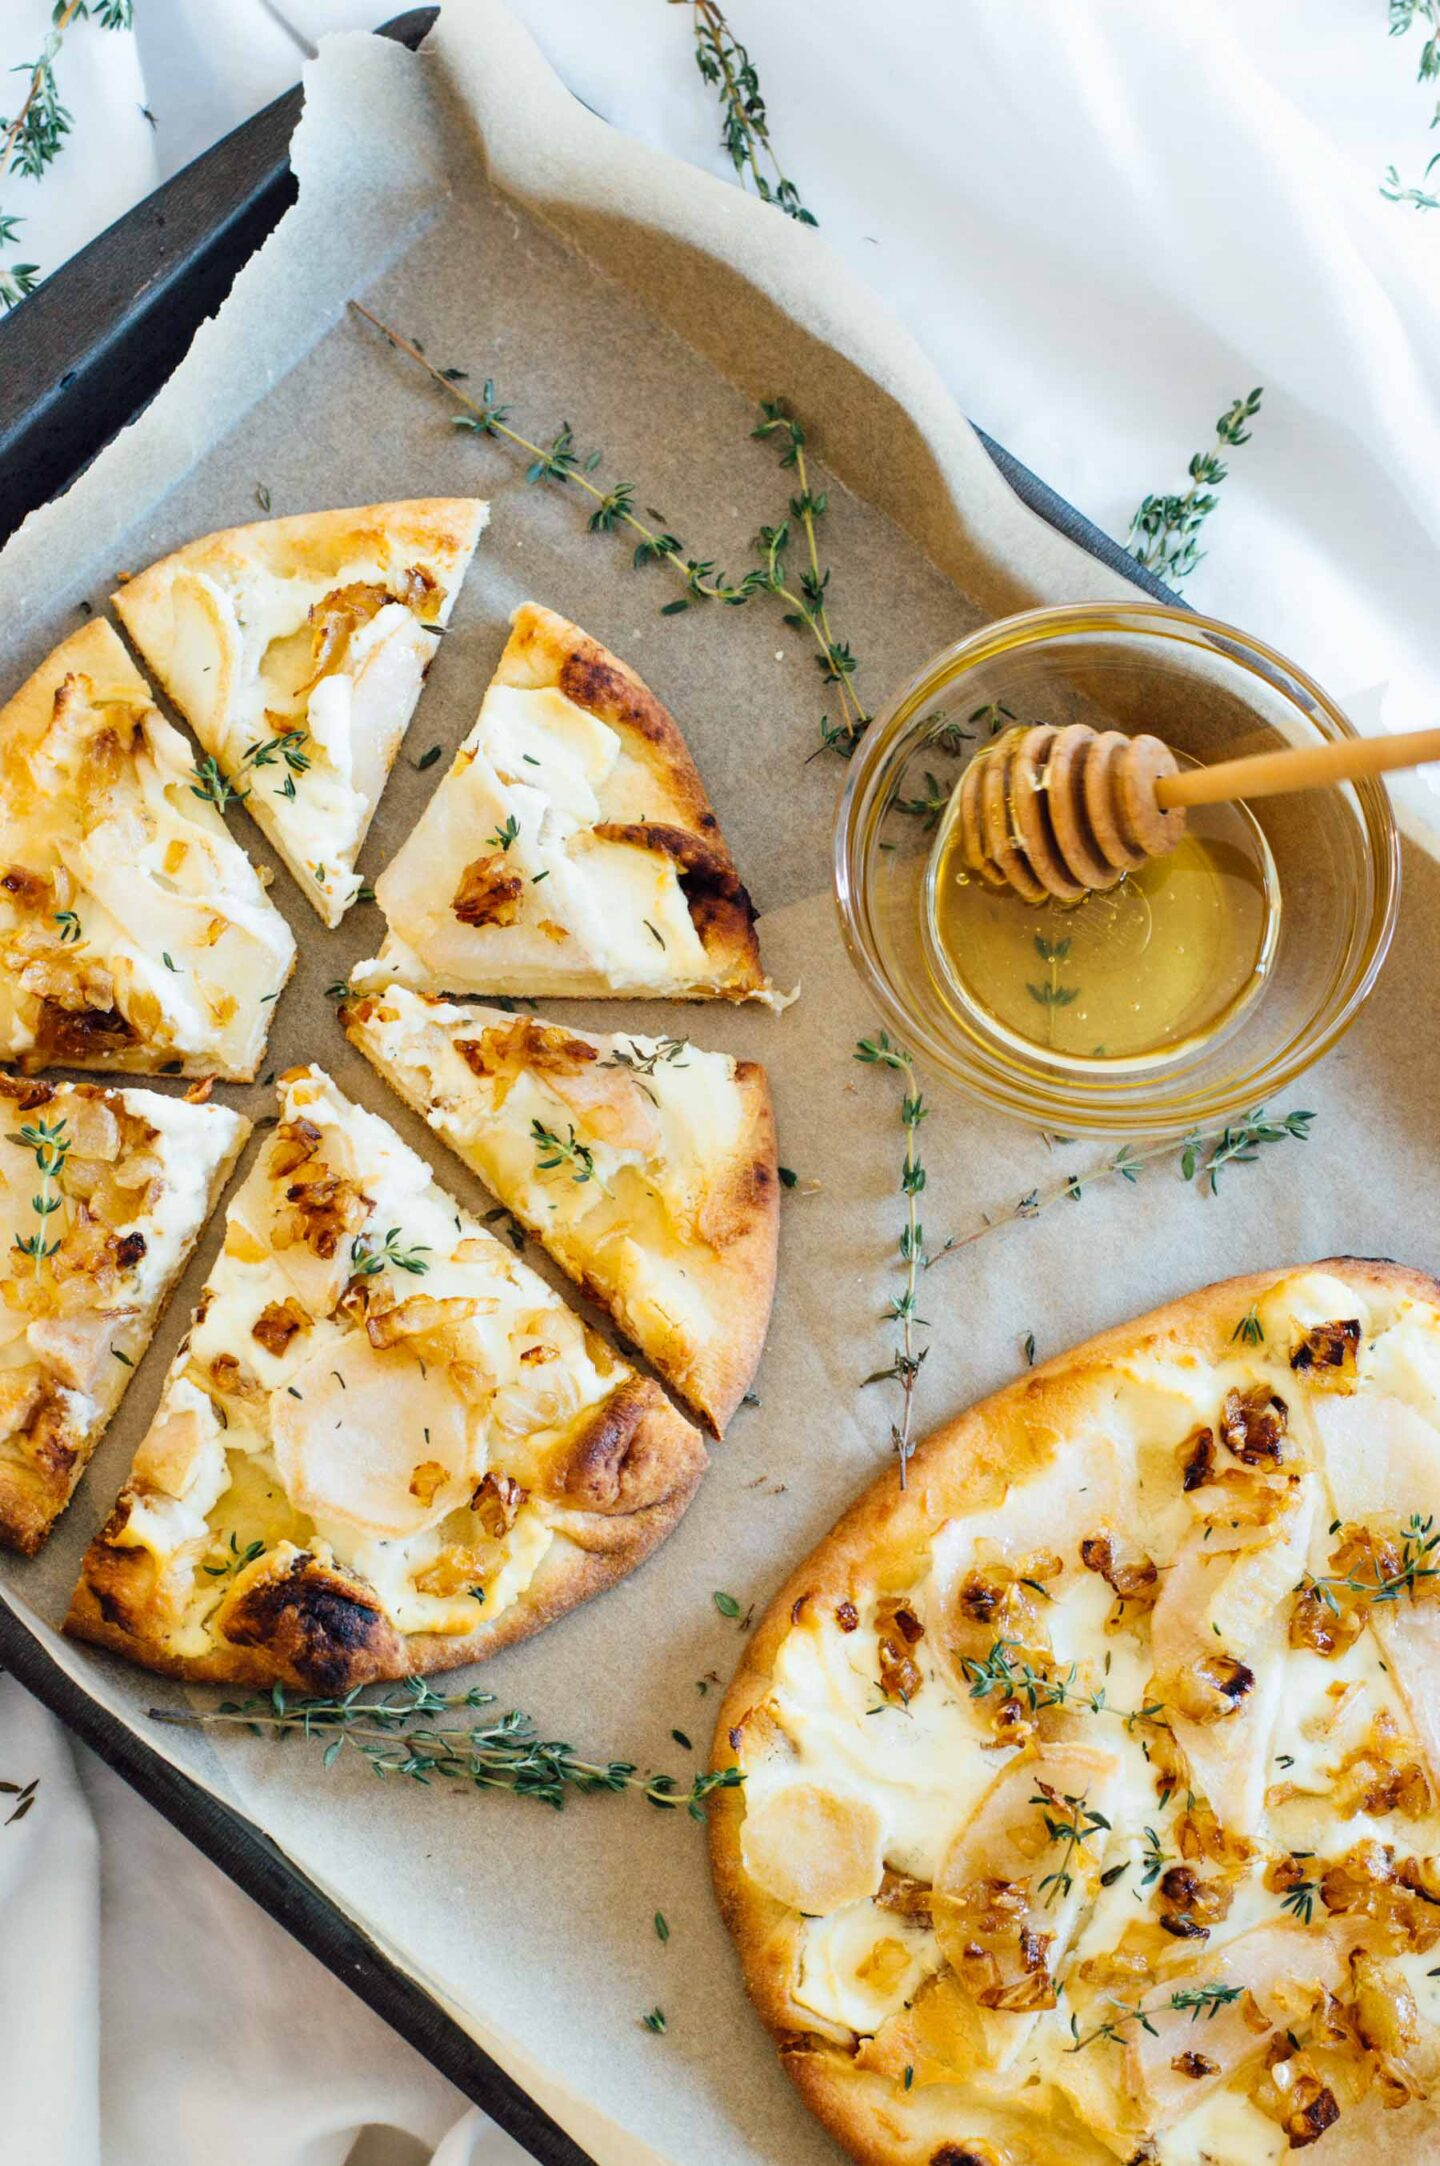 Naan pizza with pears and honey - bygabriella.co. Come find more autumn pear inspiration! #pearpizza #pearrecipes #pearrecipe